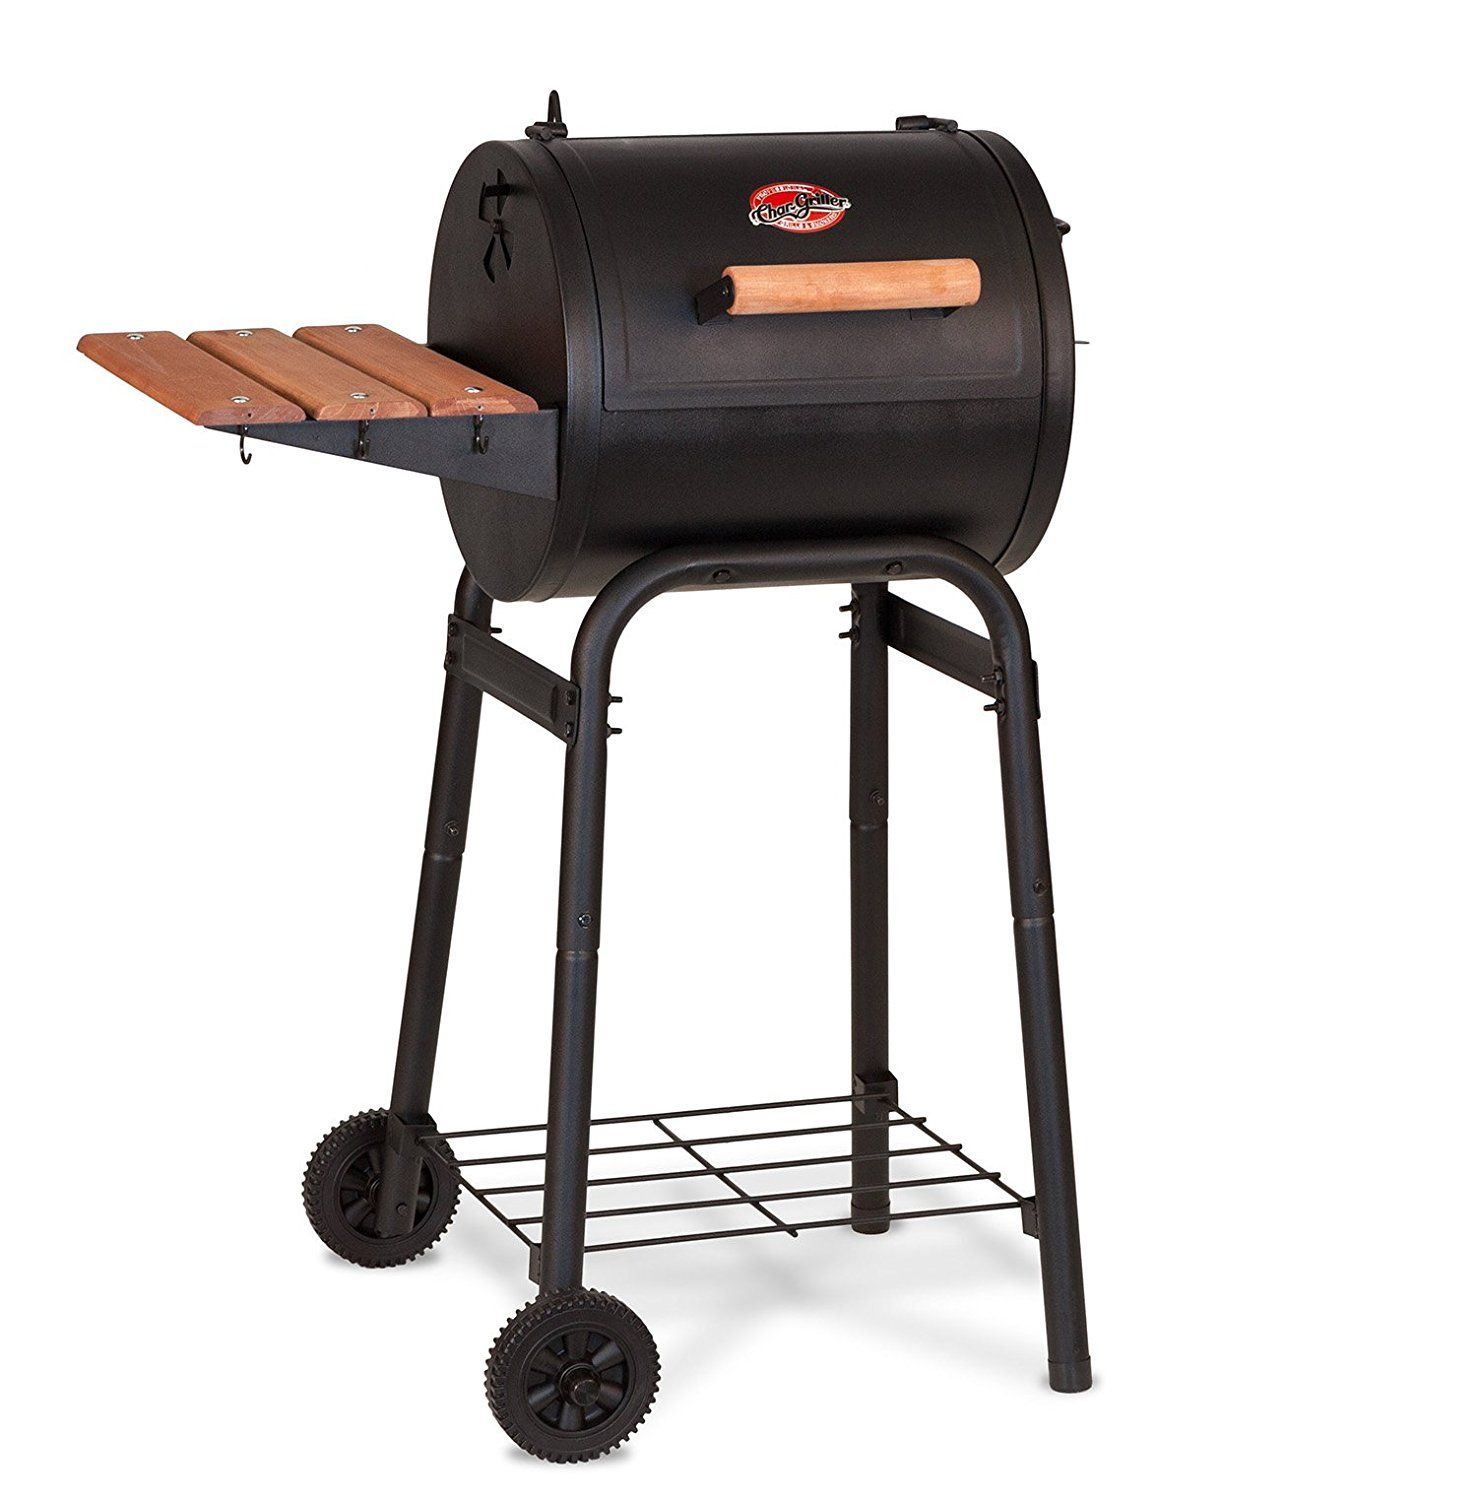 Best Grill Under 200 Best charcoal grill